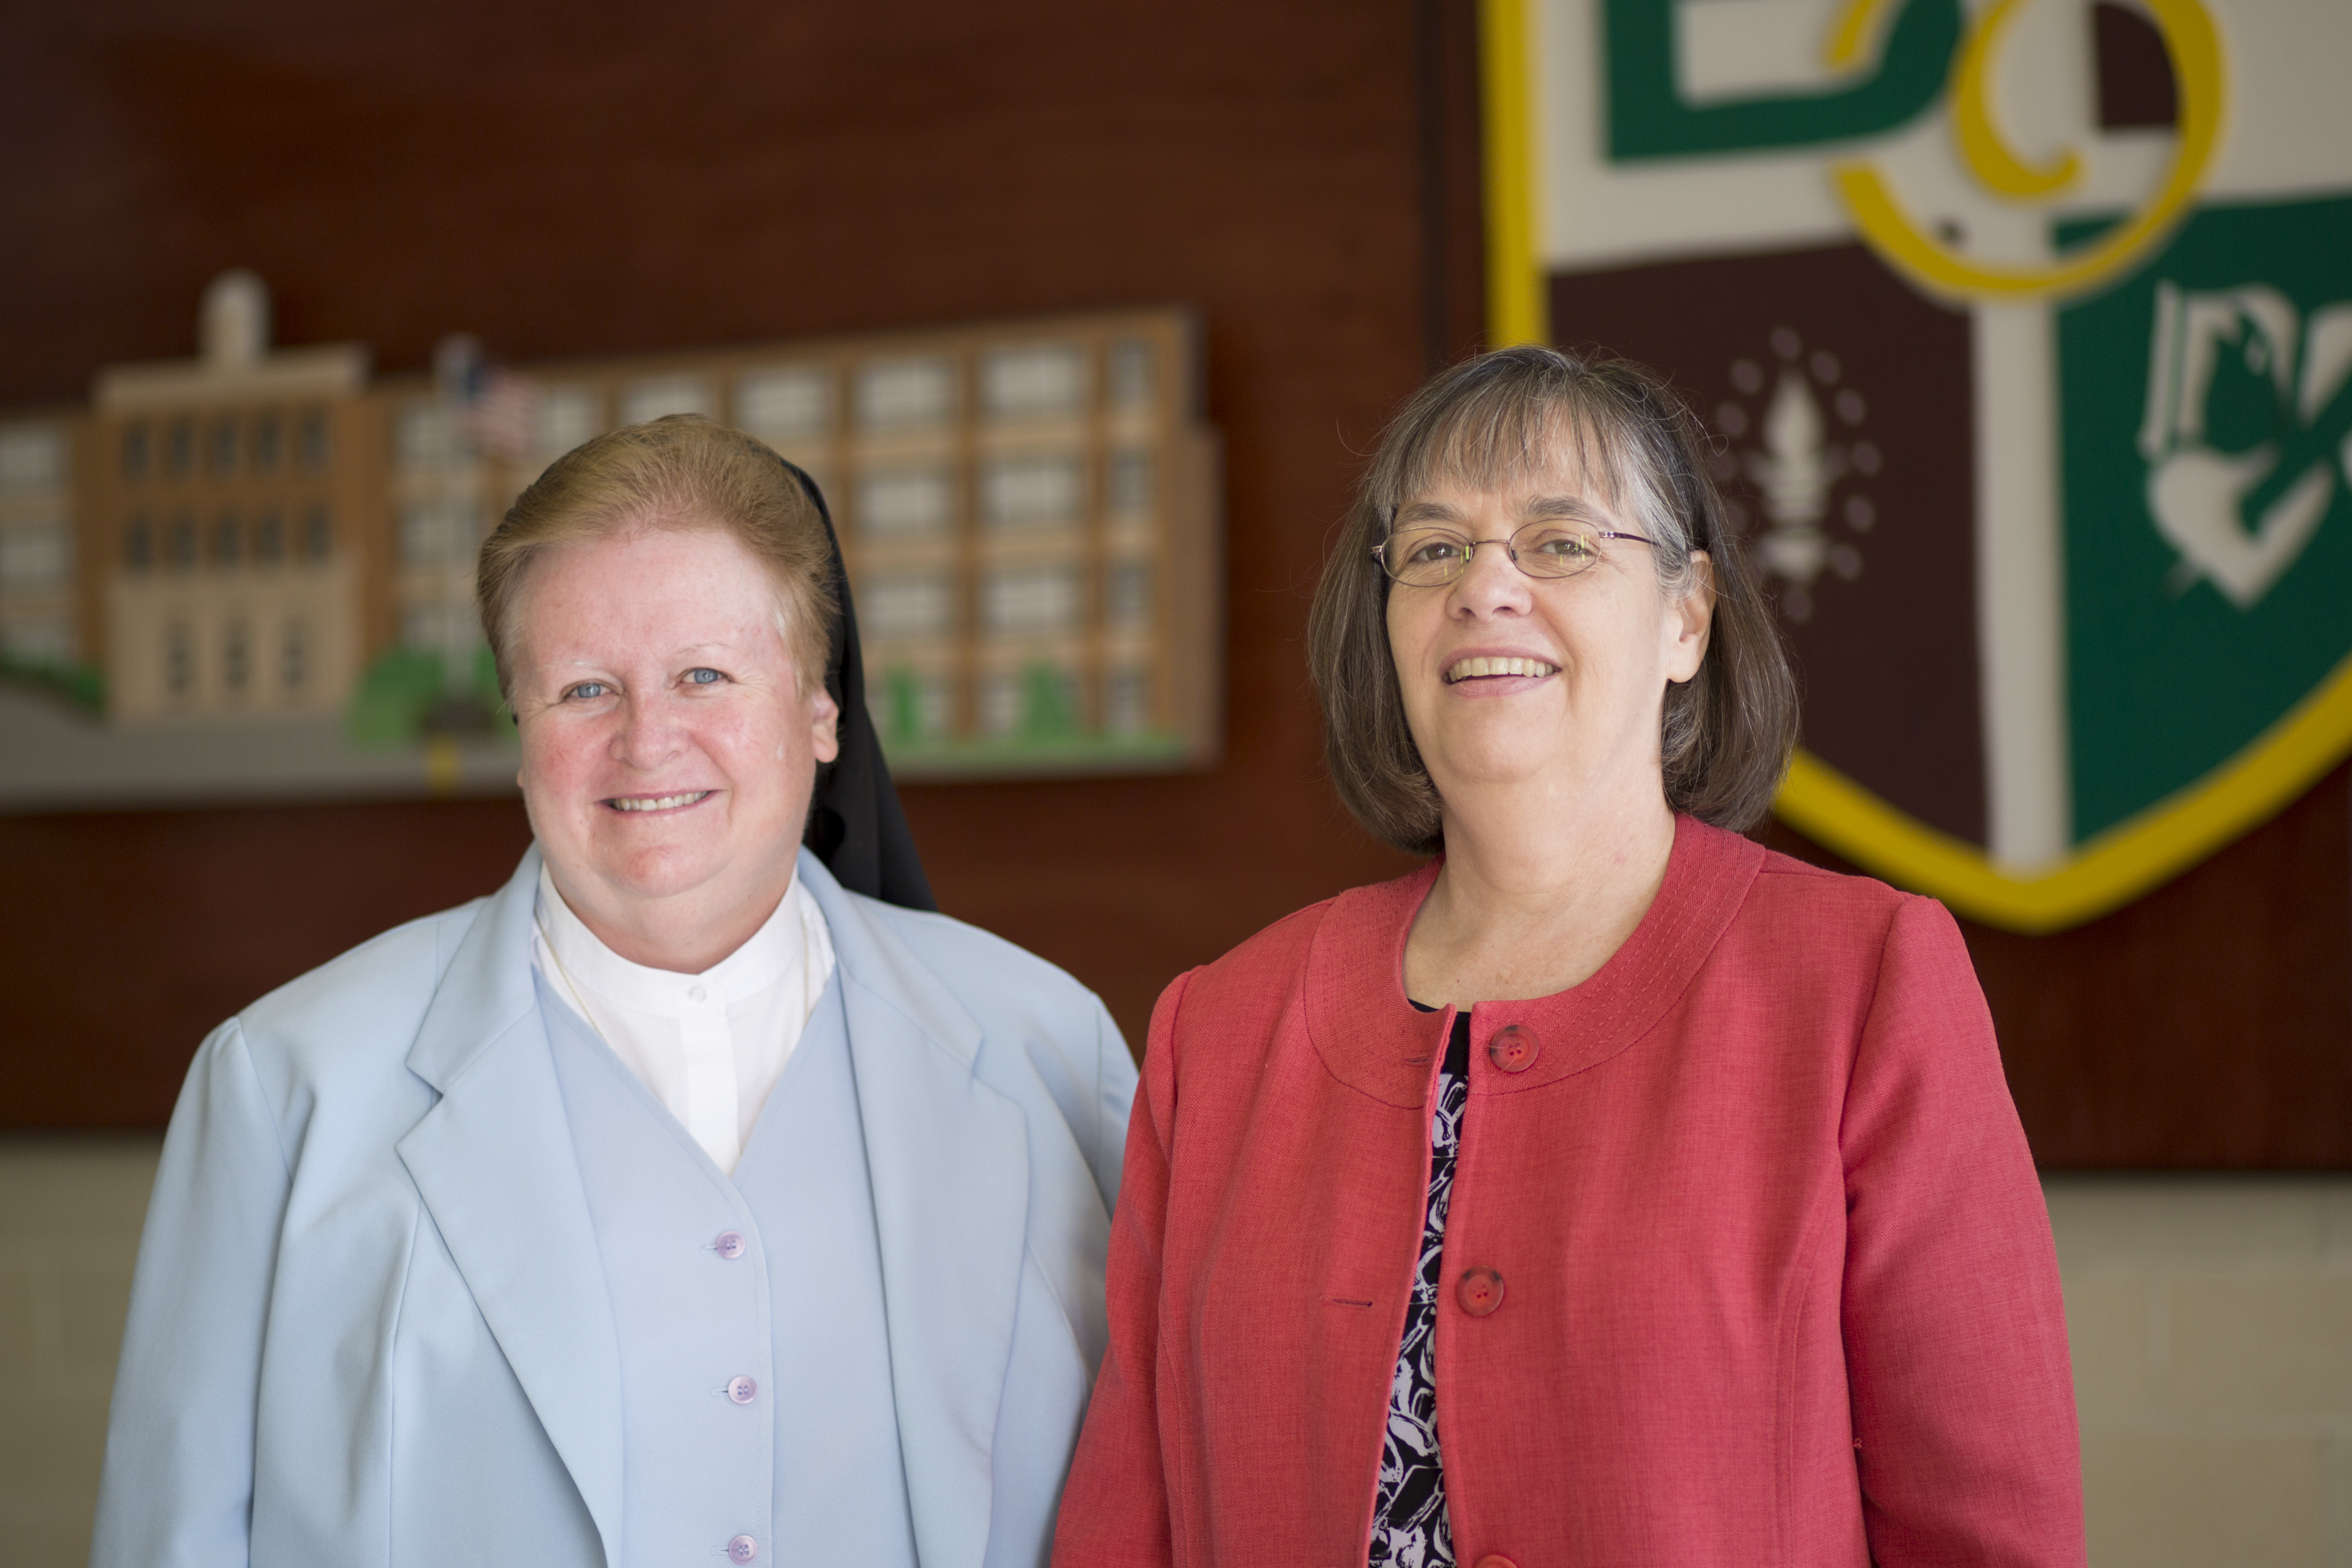 Sister Maureen L. McDermott (left), superintendent of secondary schools for the archdiocese, and and Dr. Patricia Rigby, assistant superintendent, at Monsignor Bonner and Archbishop Prendergast High School in Drexel Hill. The Summer Bridge program for incoming ninth graders expanded to two new sites. (MARGO REED / Staff Photographer )